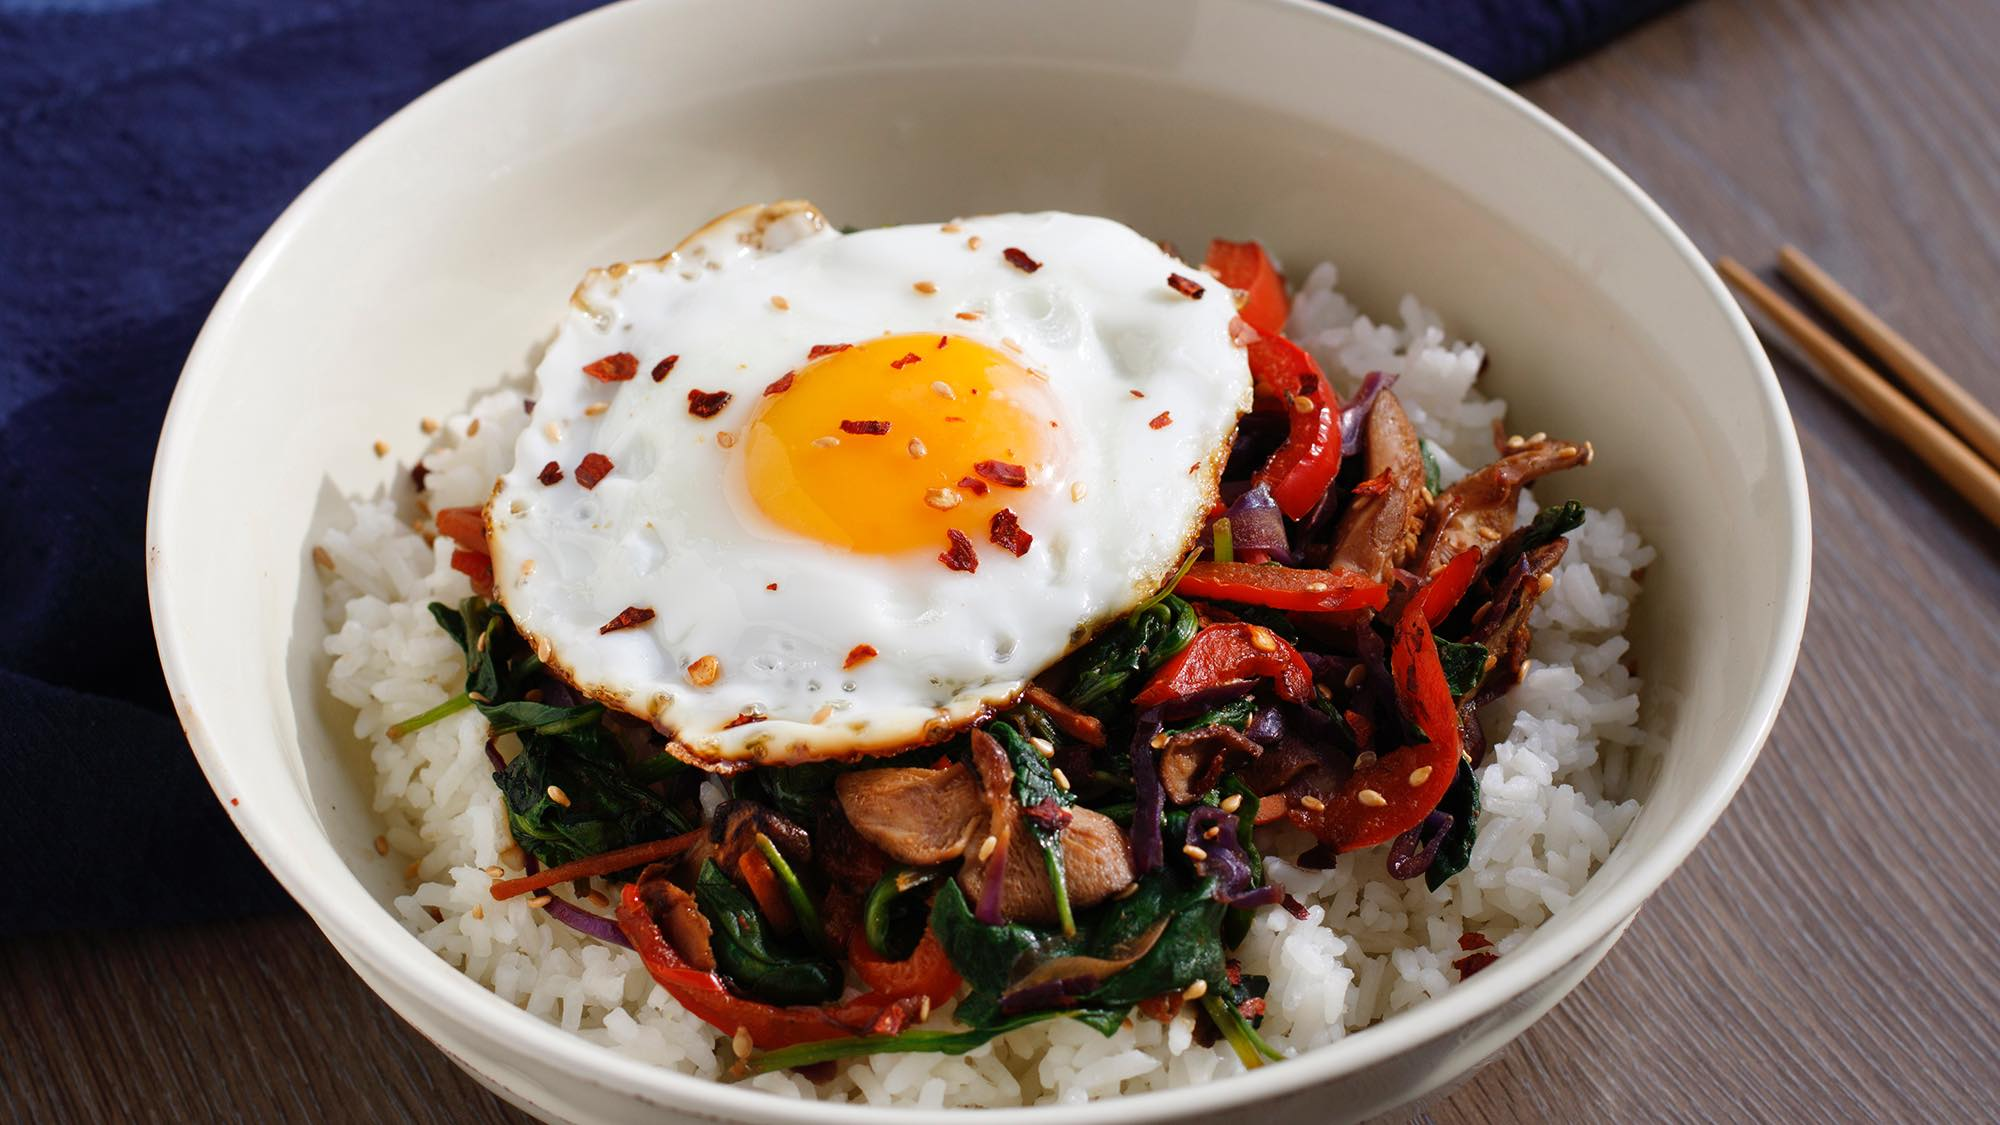 MCCormick Vegetable Bibimbap